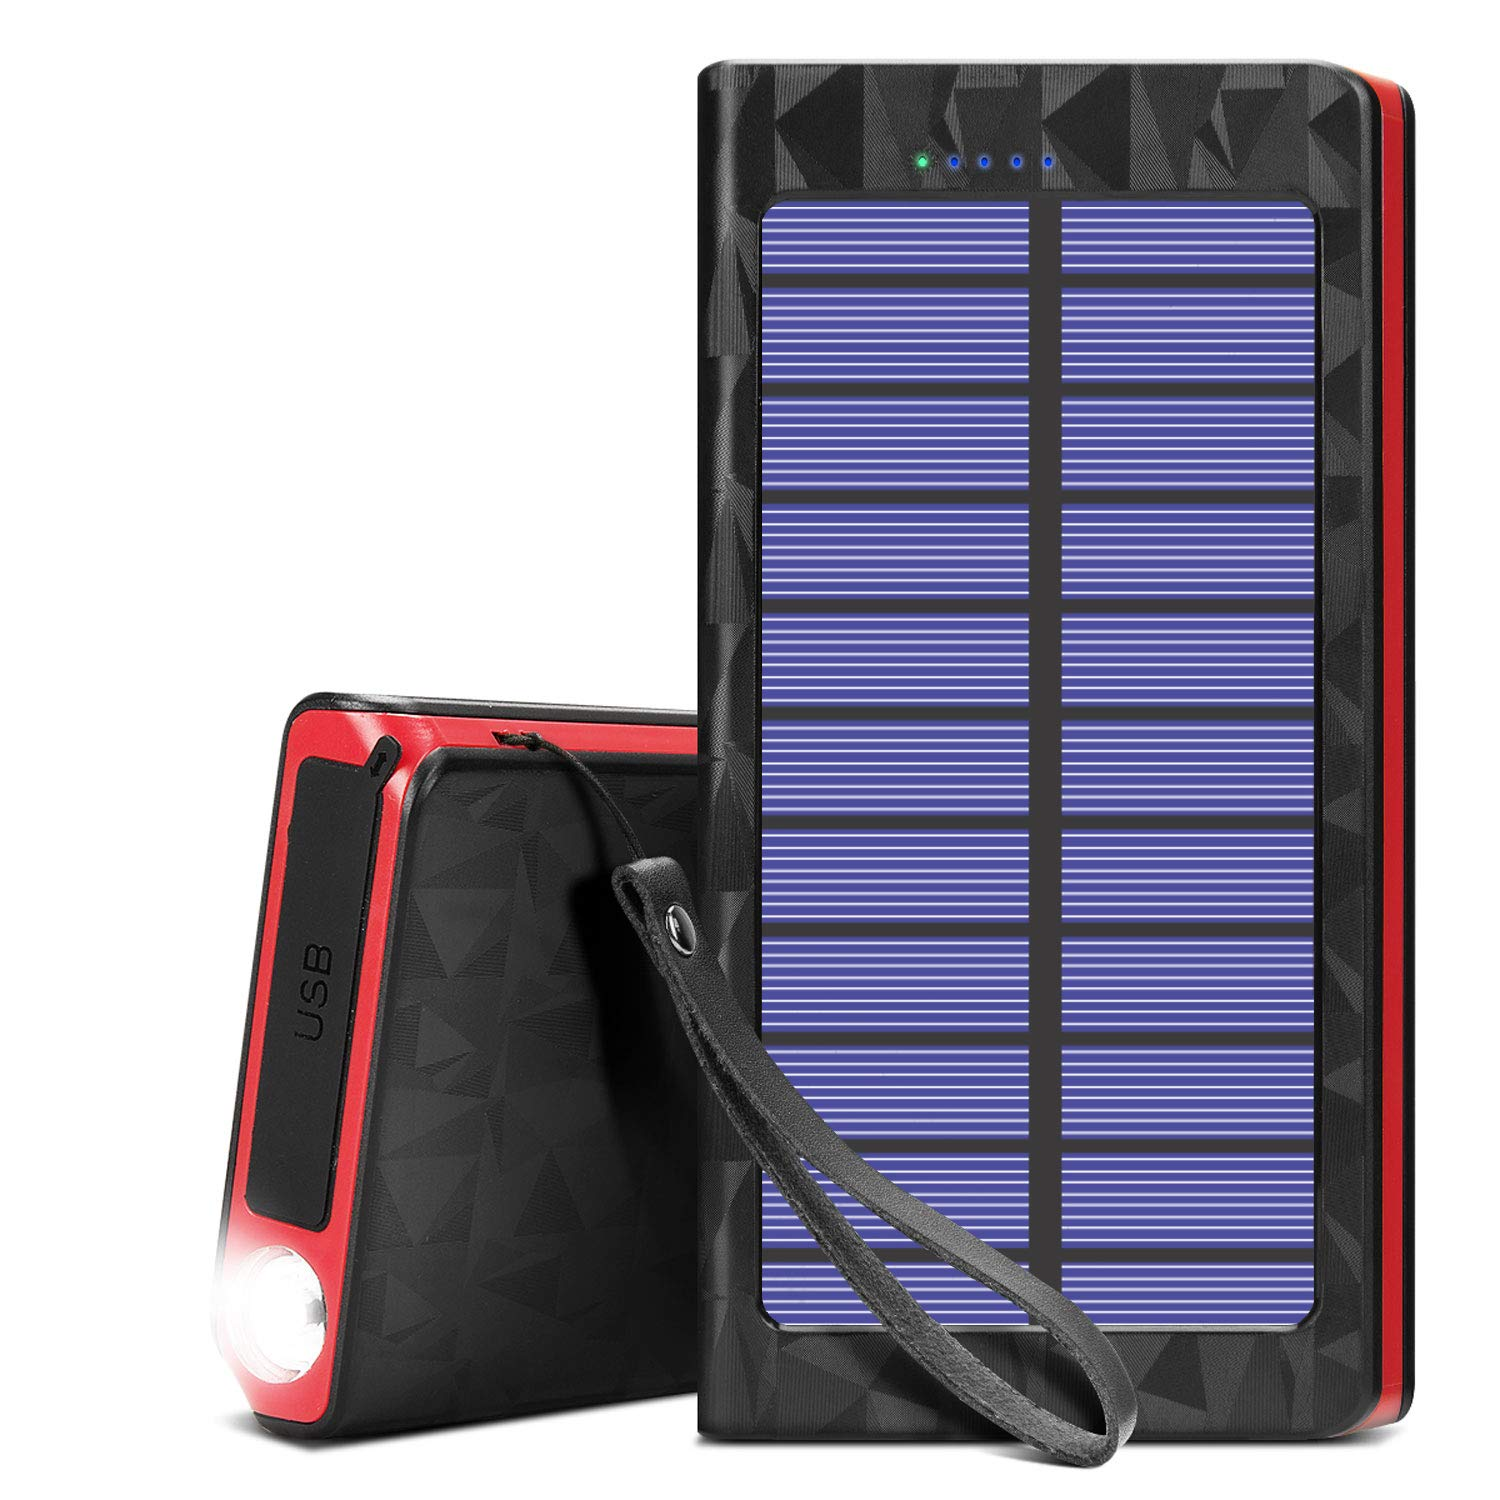 LICORNE Portable Solar Cell Phone Chargers Power Bank 20000mAh Battery with LED and Fast Charge USB Output Ports, External Batteries Pack Solar Panel Charger for Camping Outdoor Activities by LICORNE